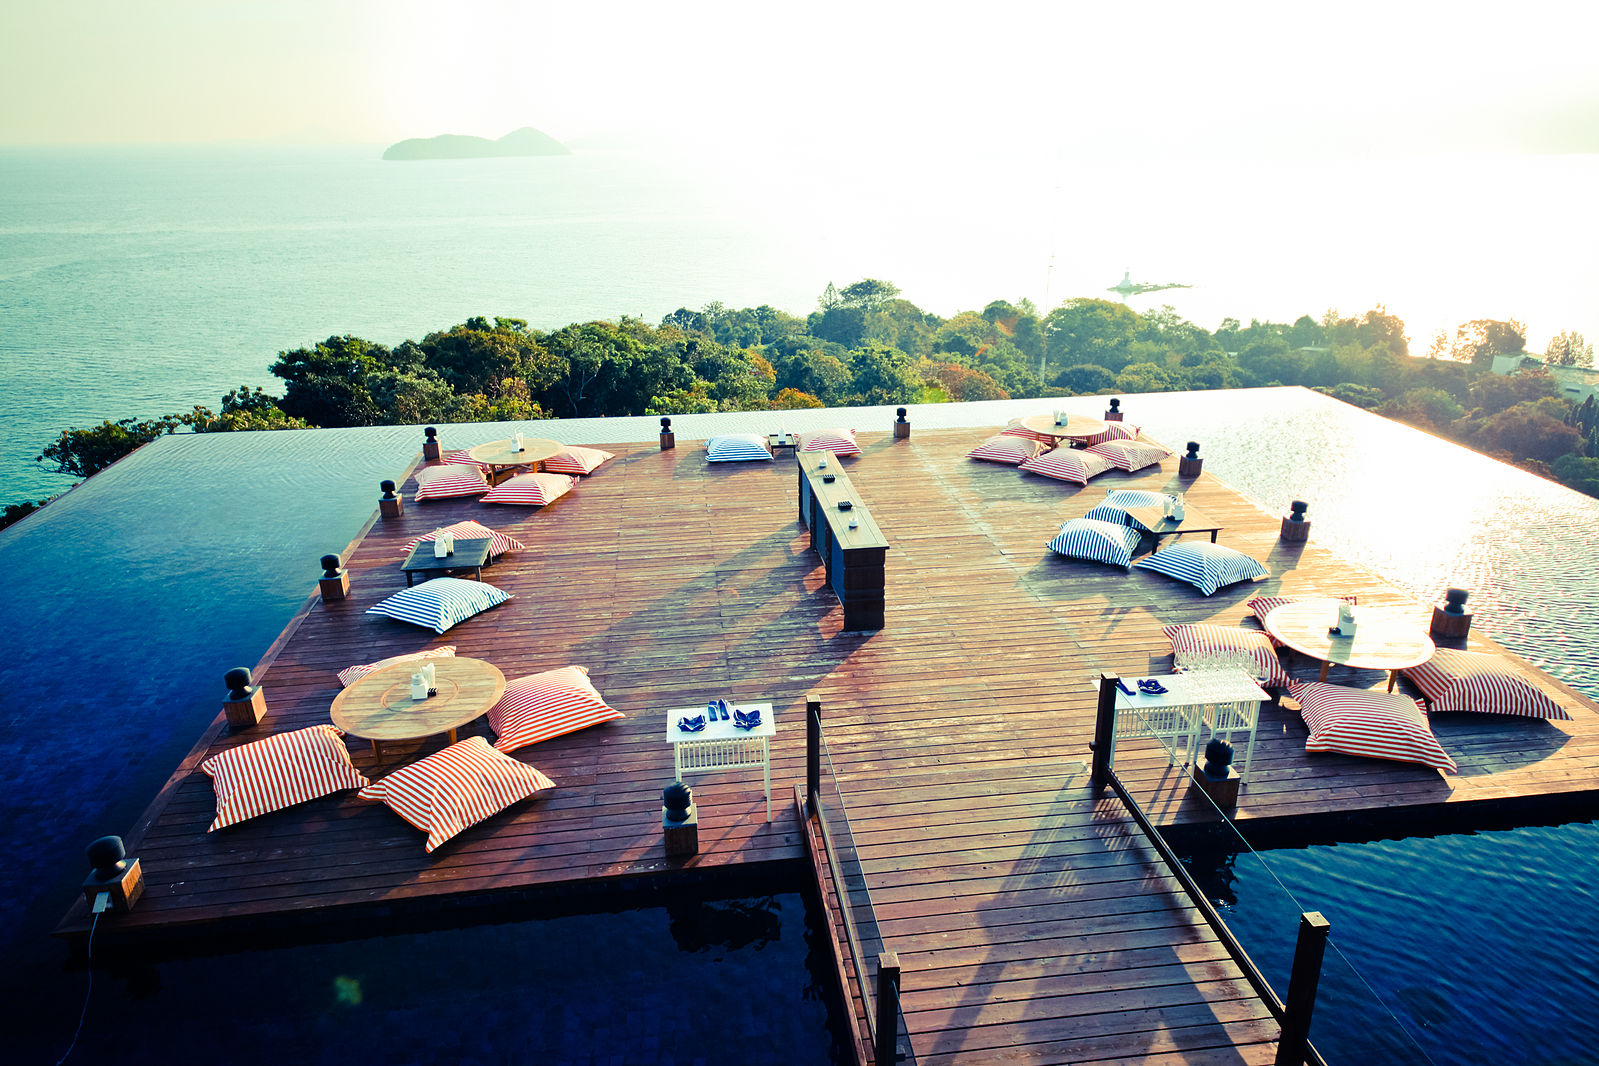 Baba Nest at Sri Panwa Resort, Phuket, Thailand features a floating deck that overlooks the Andaman Sea with low tables and pillow-type seats perfect for lounging around and watching the sun set.